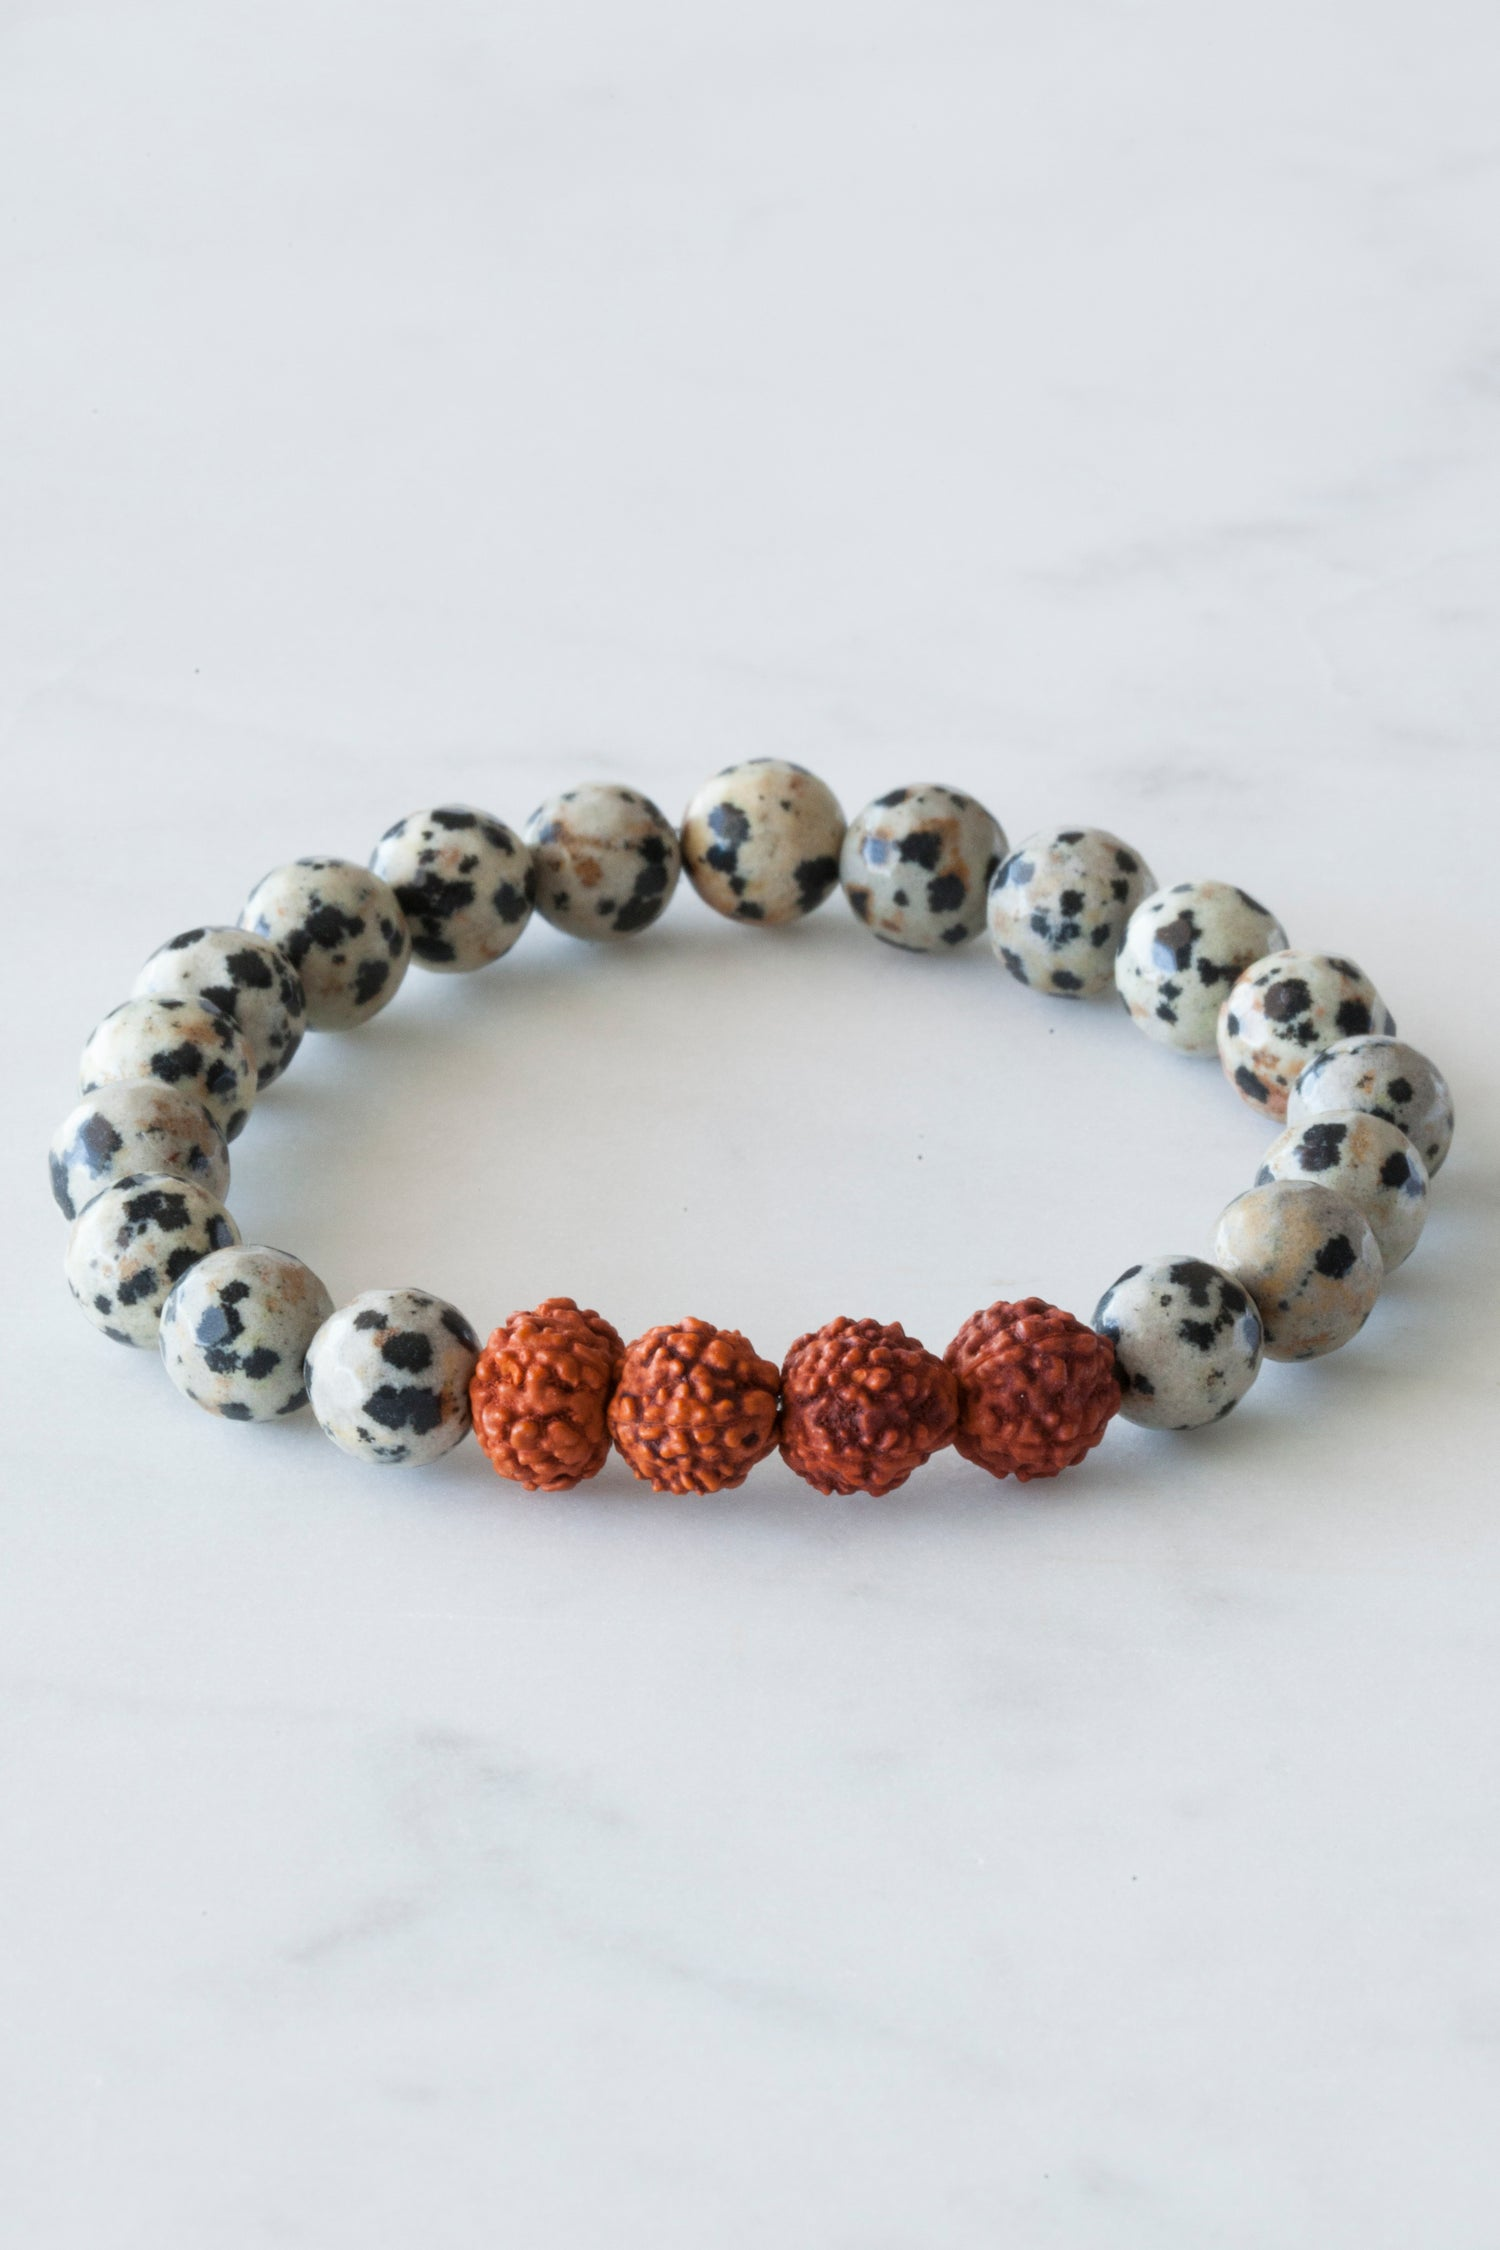 web products spider braceletes of bracelet jasper the soul textures